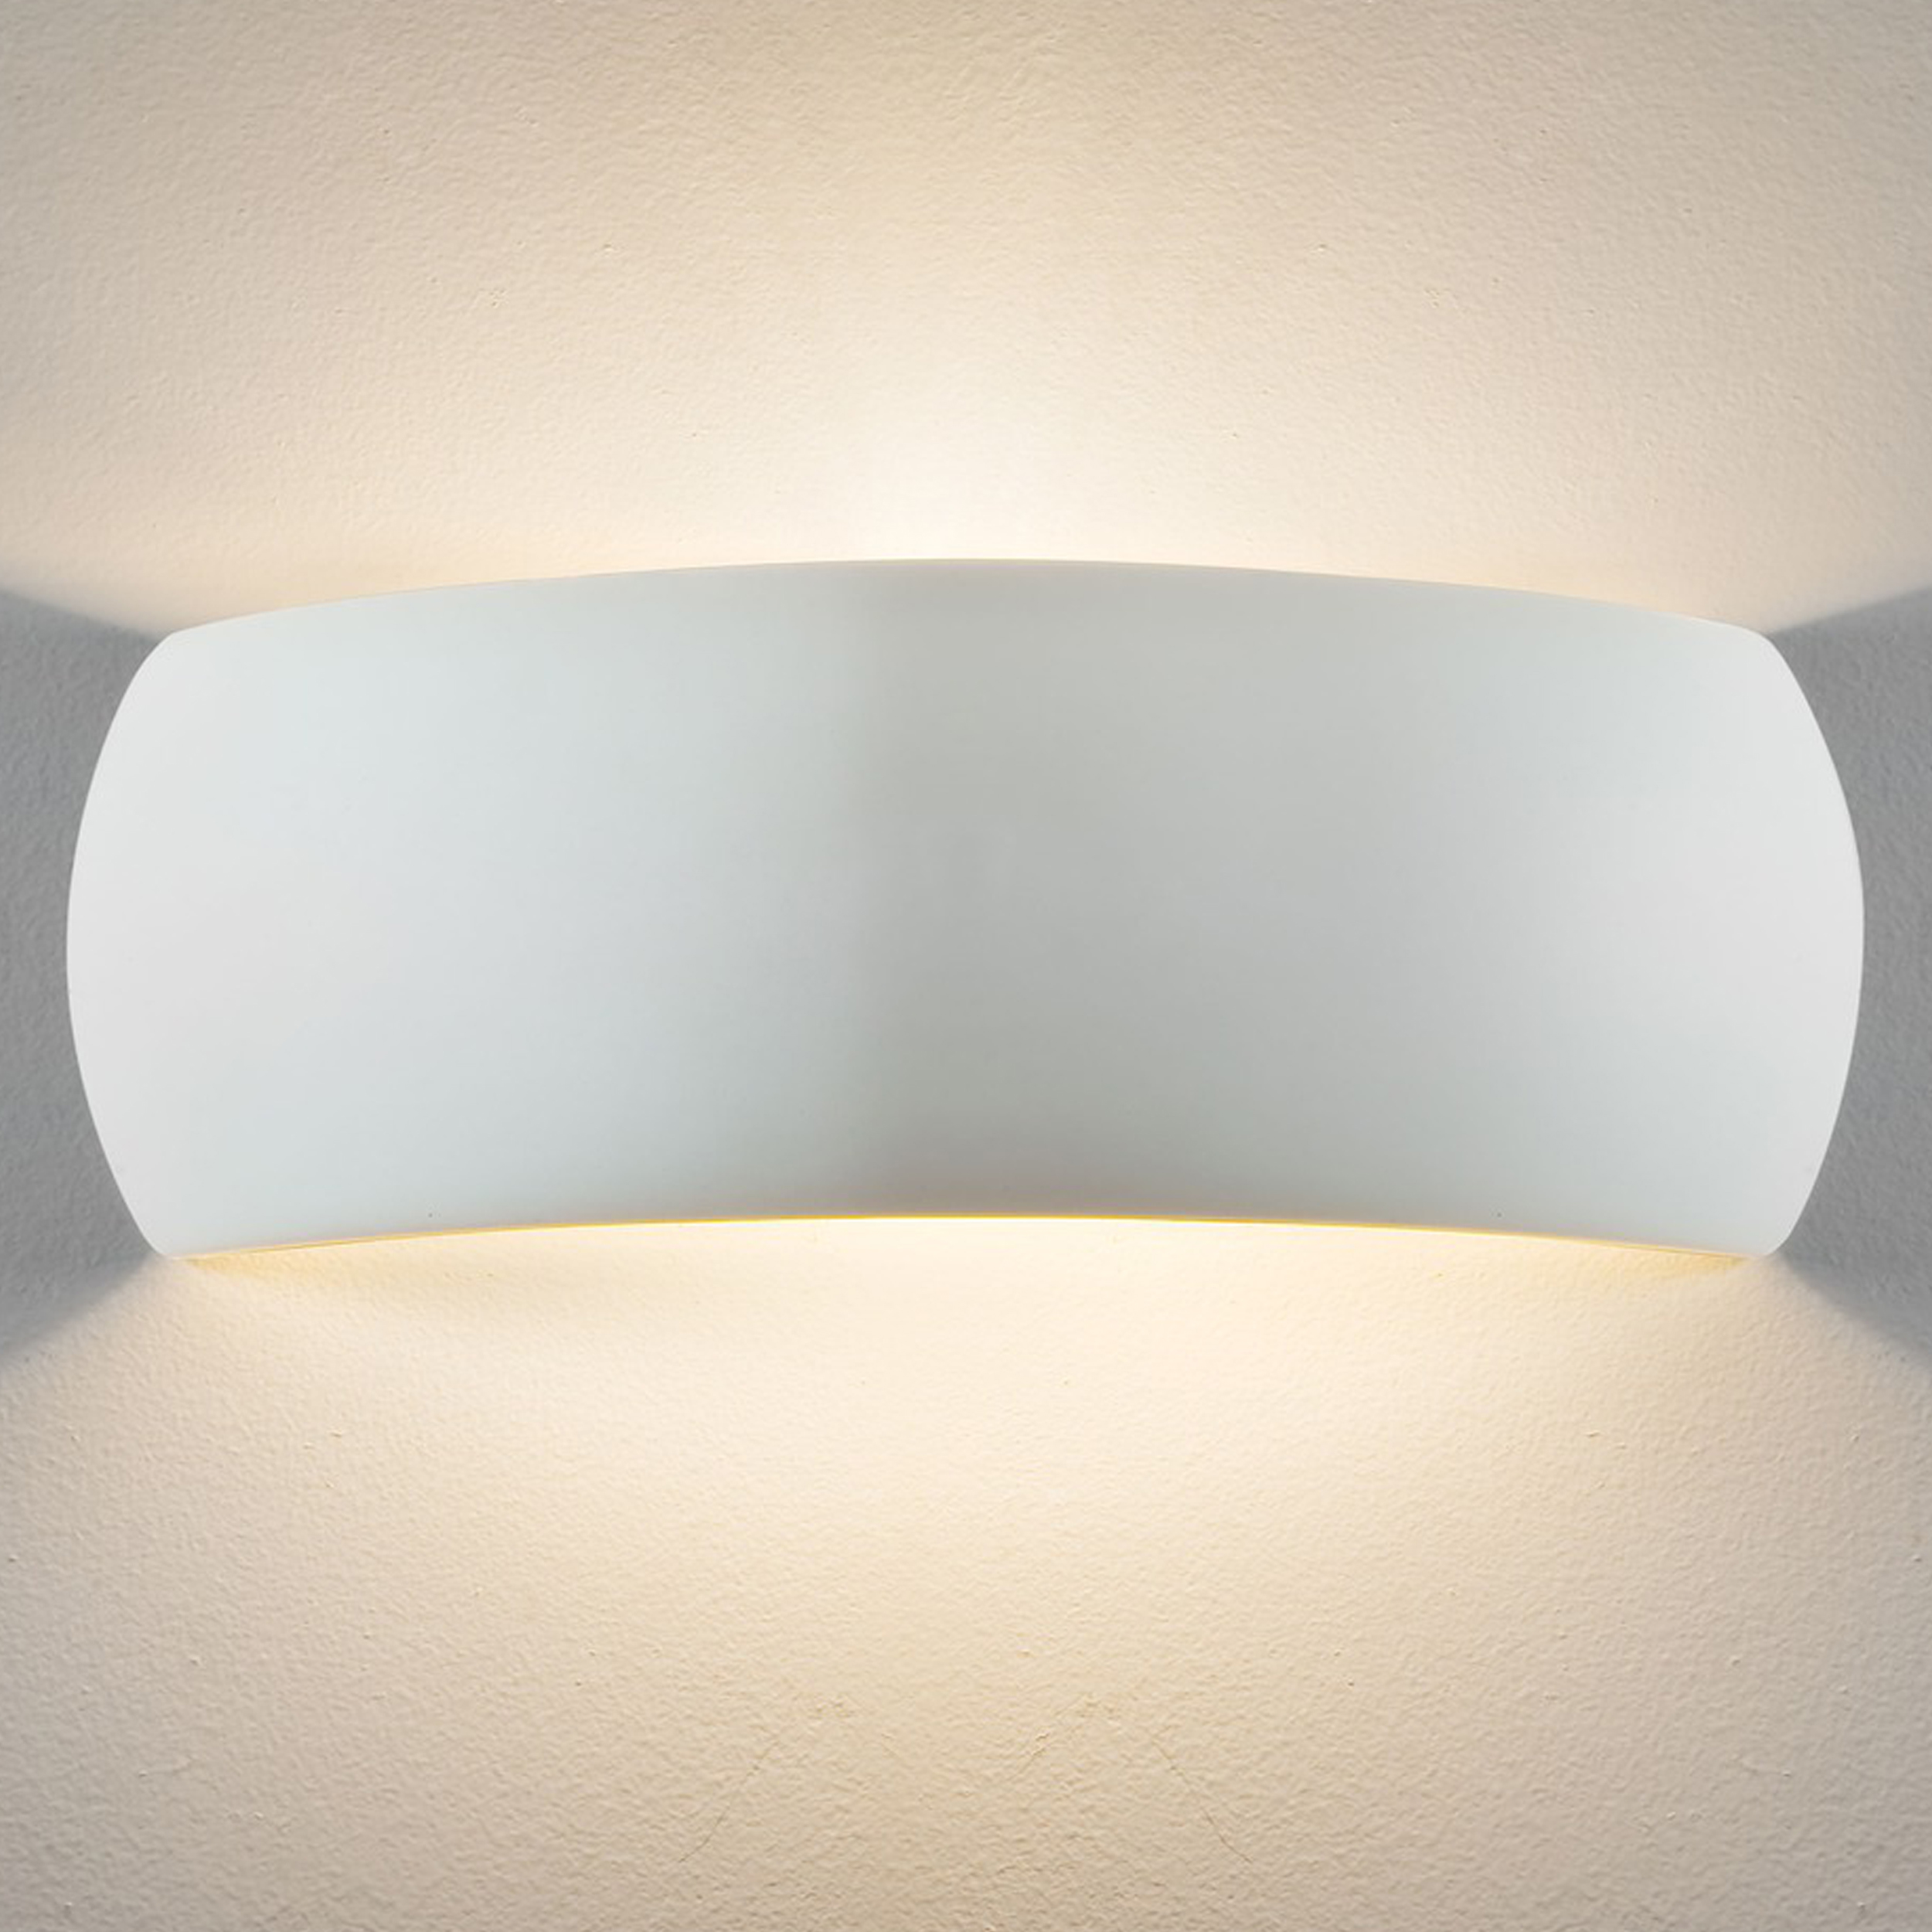 Astro Milo 400 Wall Light Ceramic